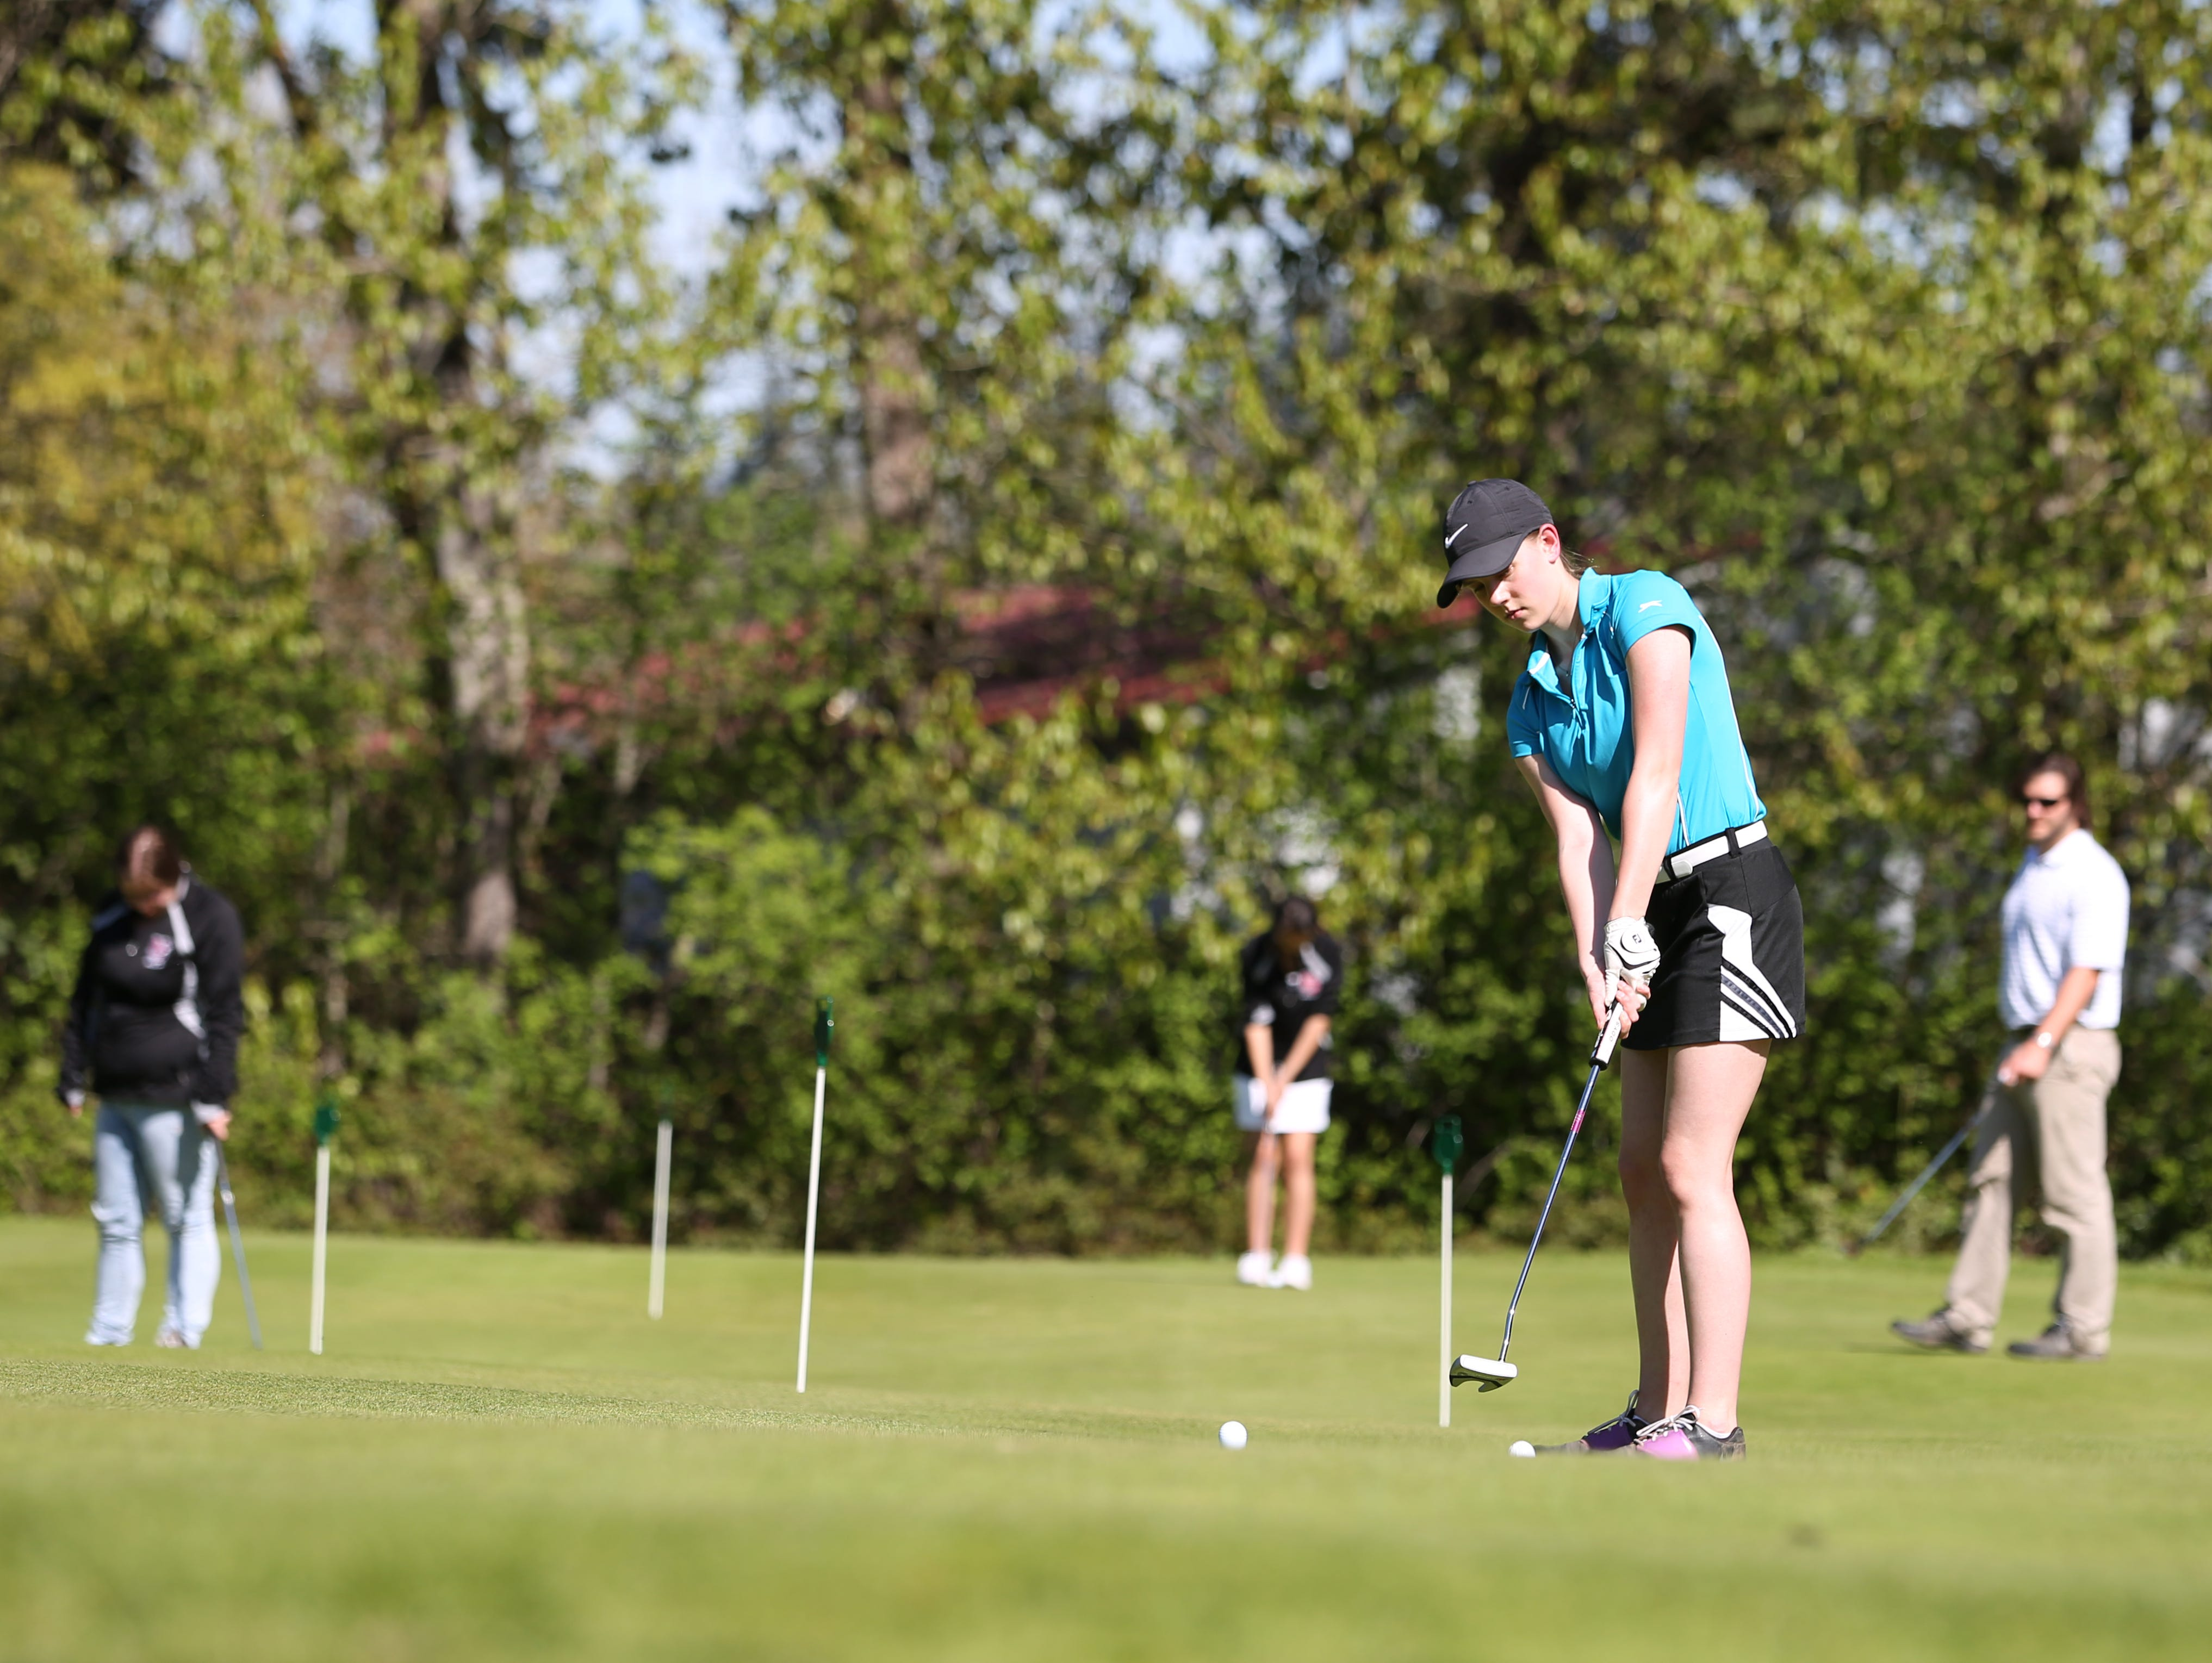 North Salem's Jessica Braun works on putting during practice Thursday, March 31, 2016, at Salem Golf Club in South Salem.